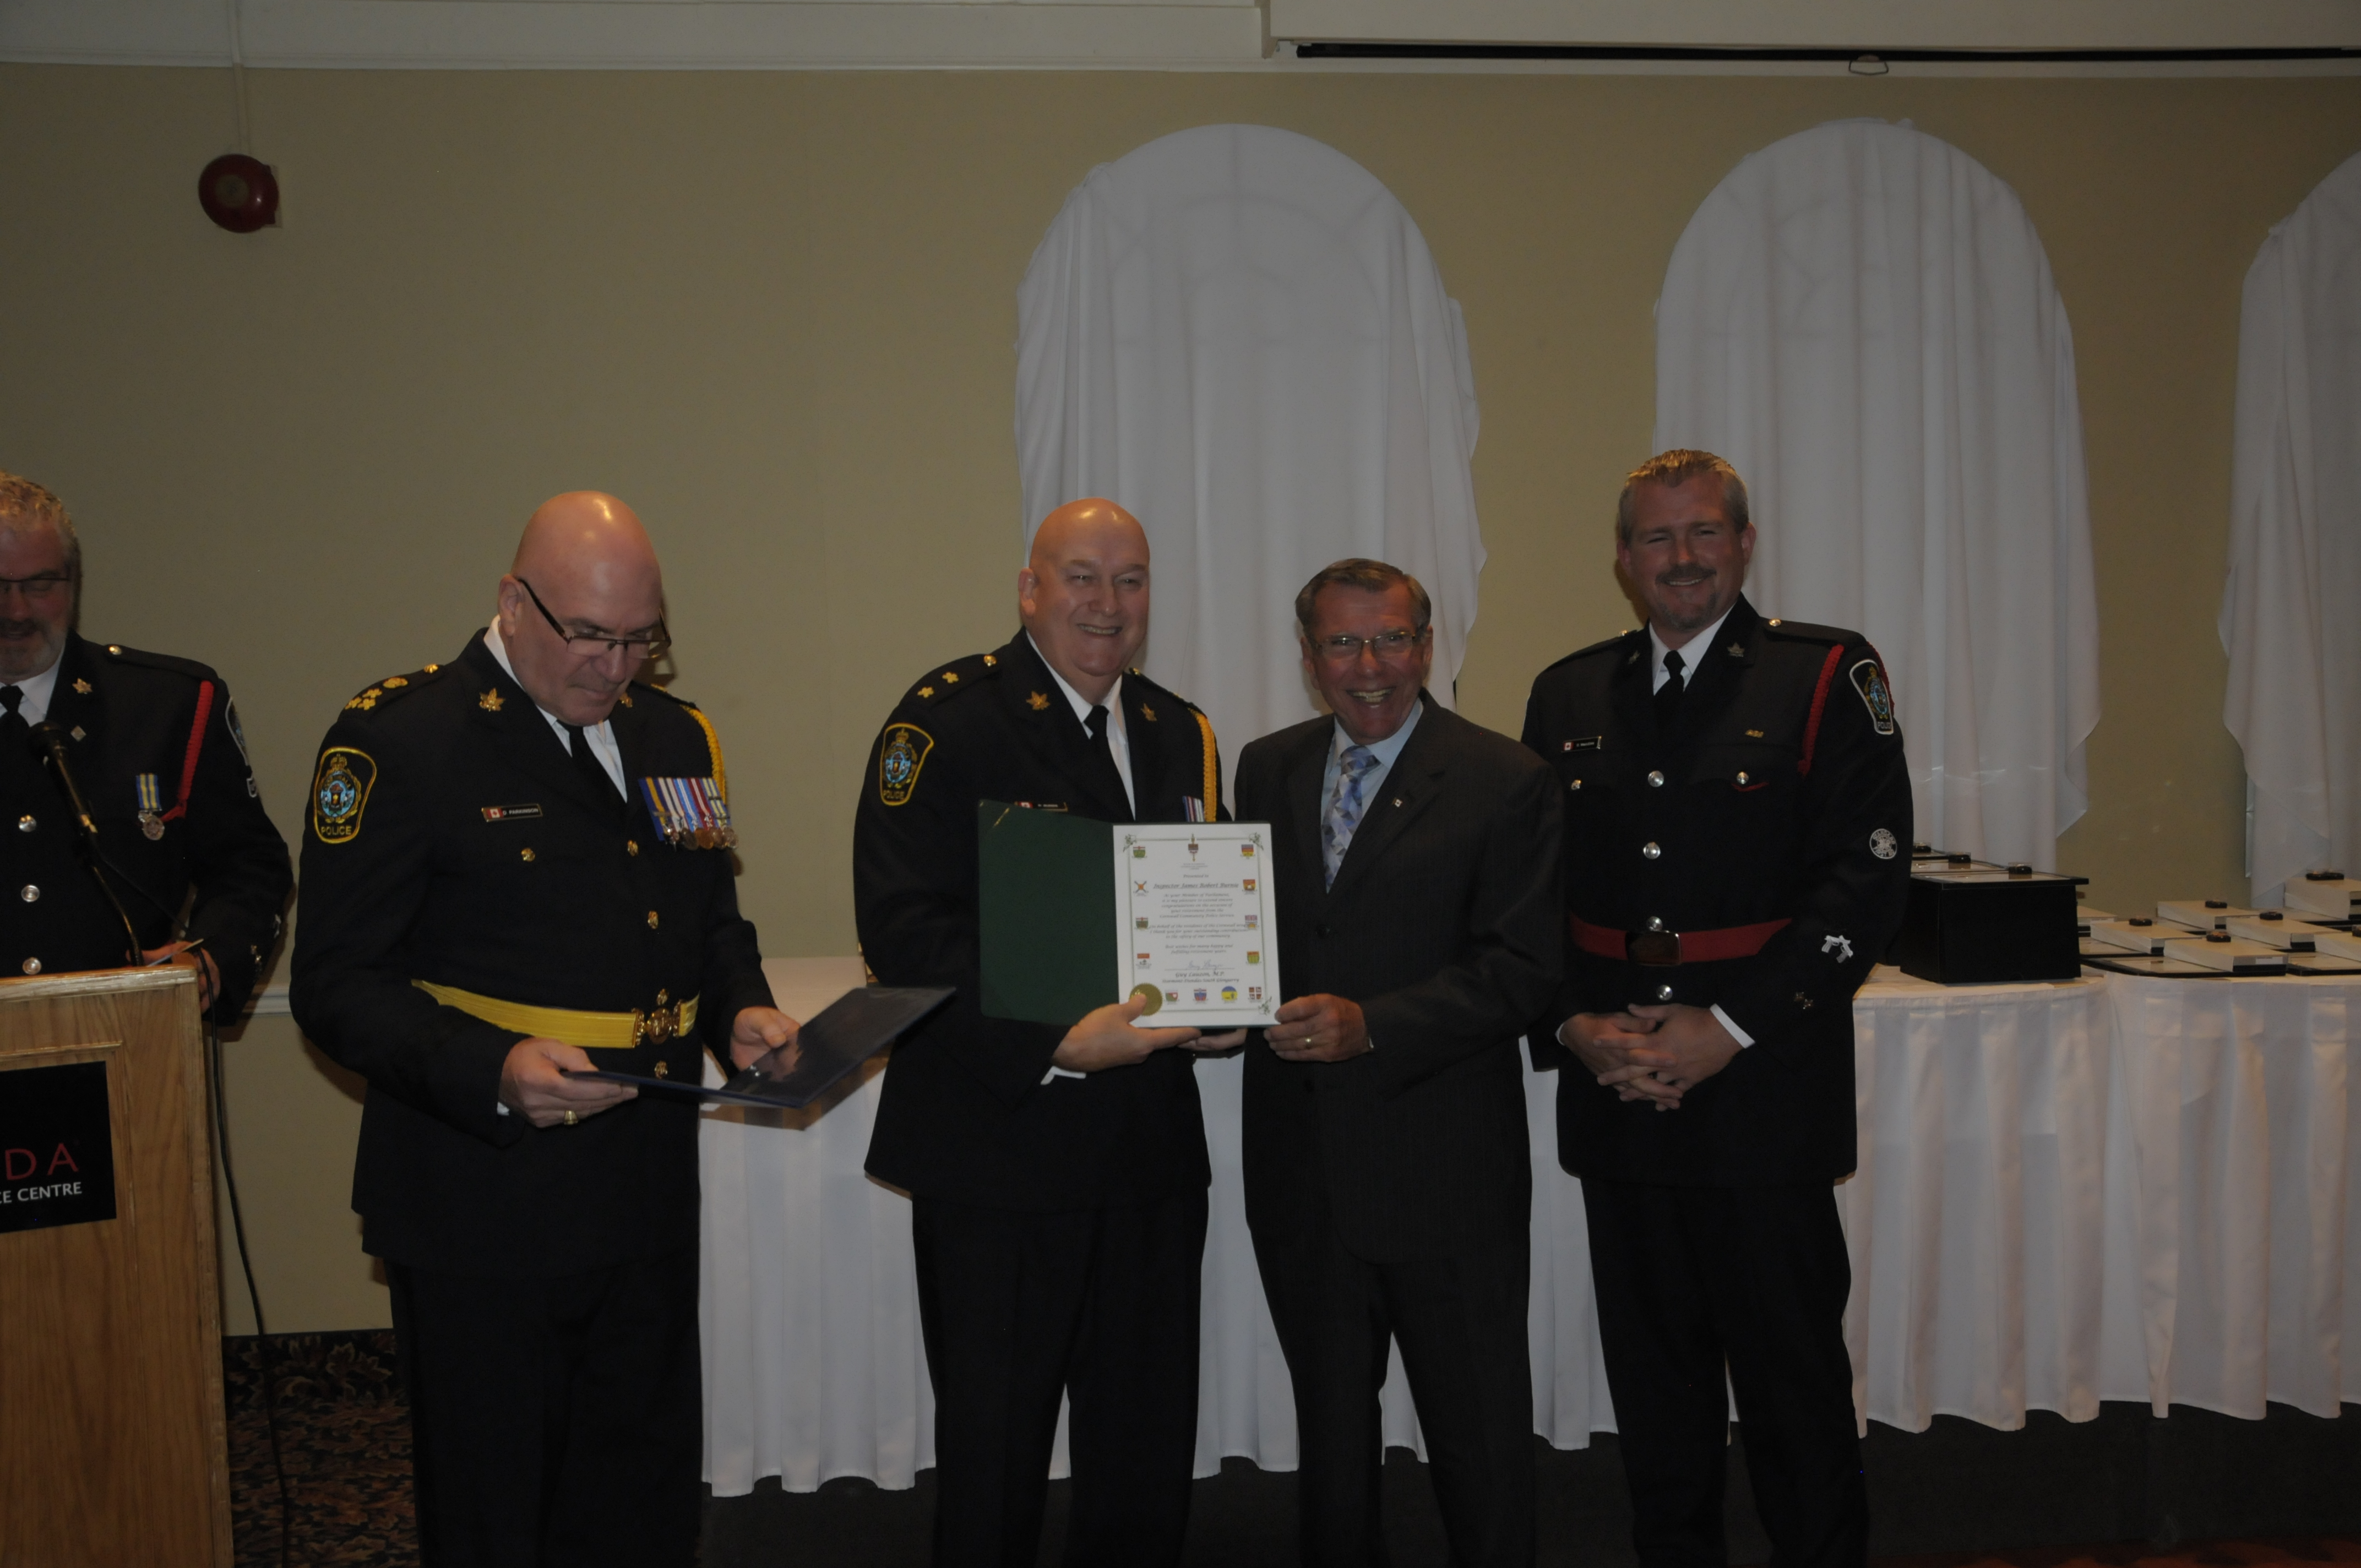 Pictured (from left) are Chief Dan Parkinson, Insp. Bob Burnie (Ret.), MP Guy Lauzon, CPA President Dave MacLean. (Cornwall Newswatch)